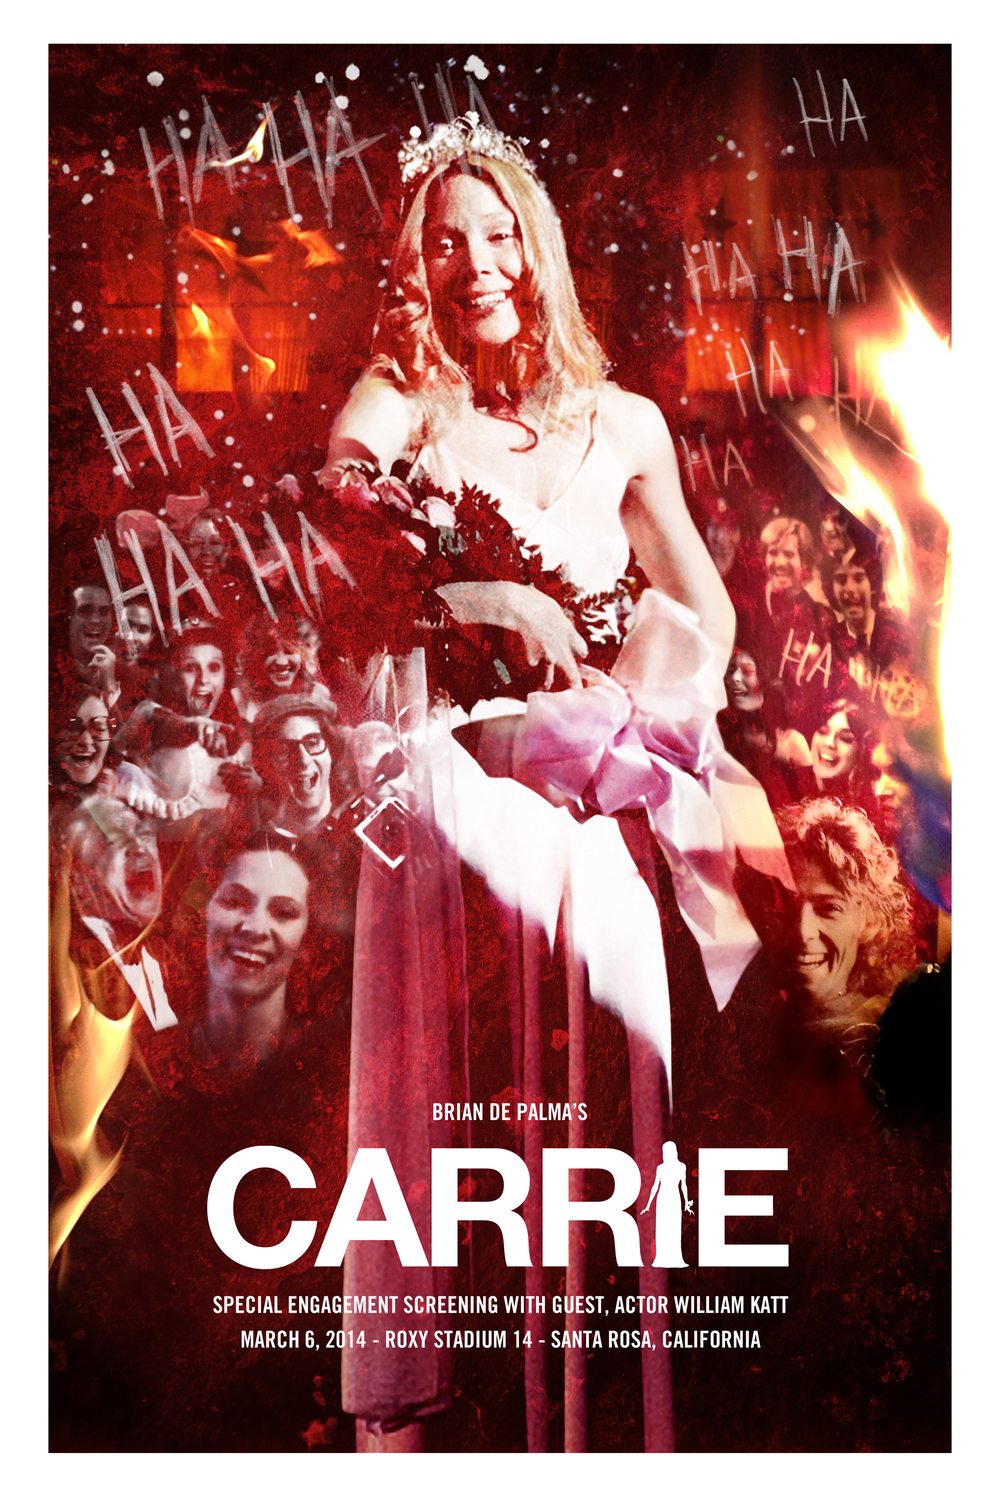 Carrie_Poster_Assemble-FIRE.jpg